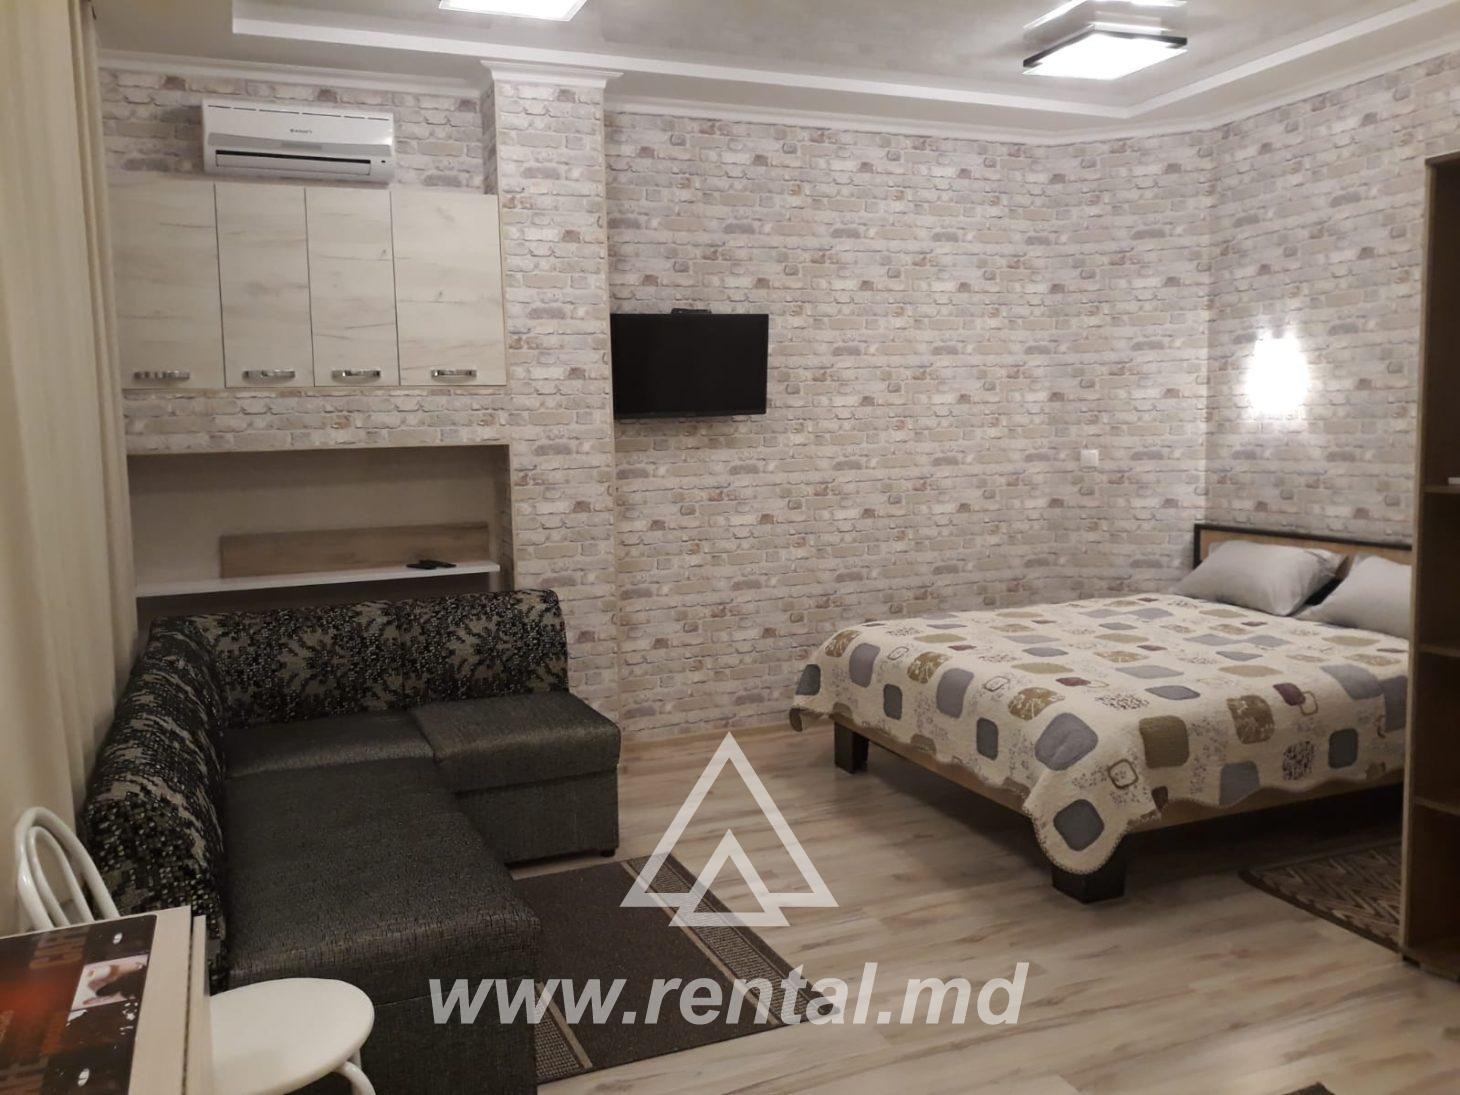 1 room apartment for rent in the city Center